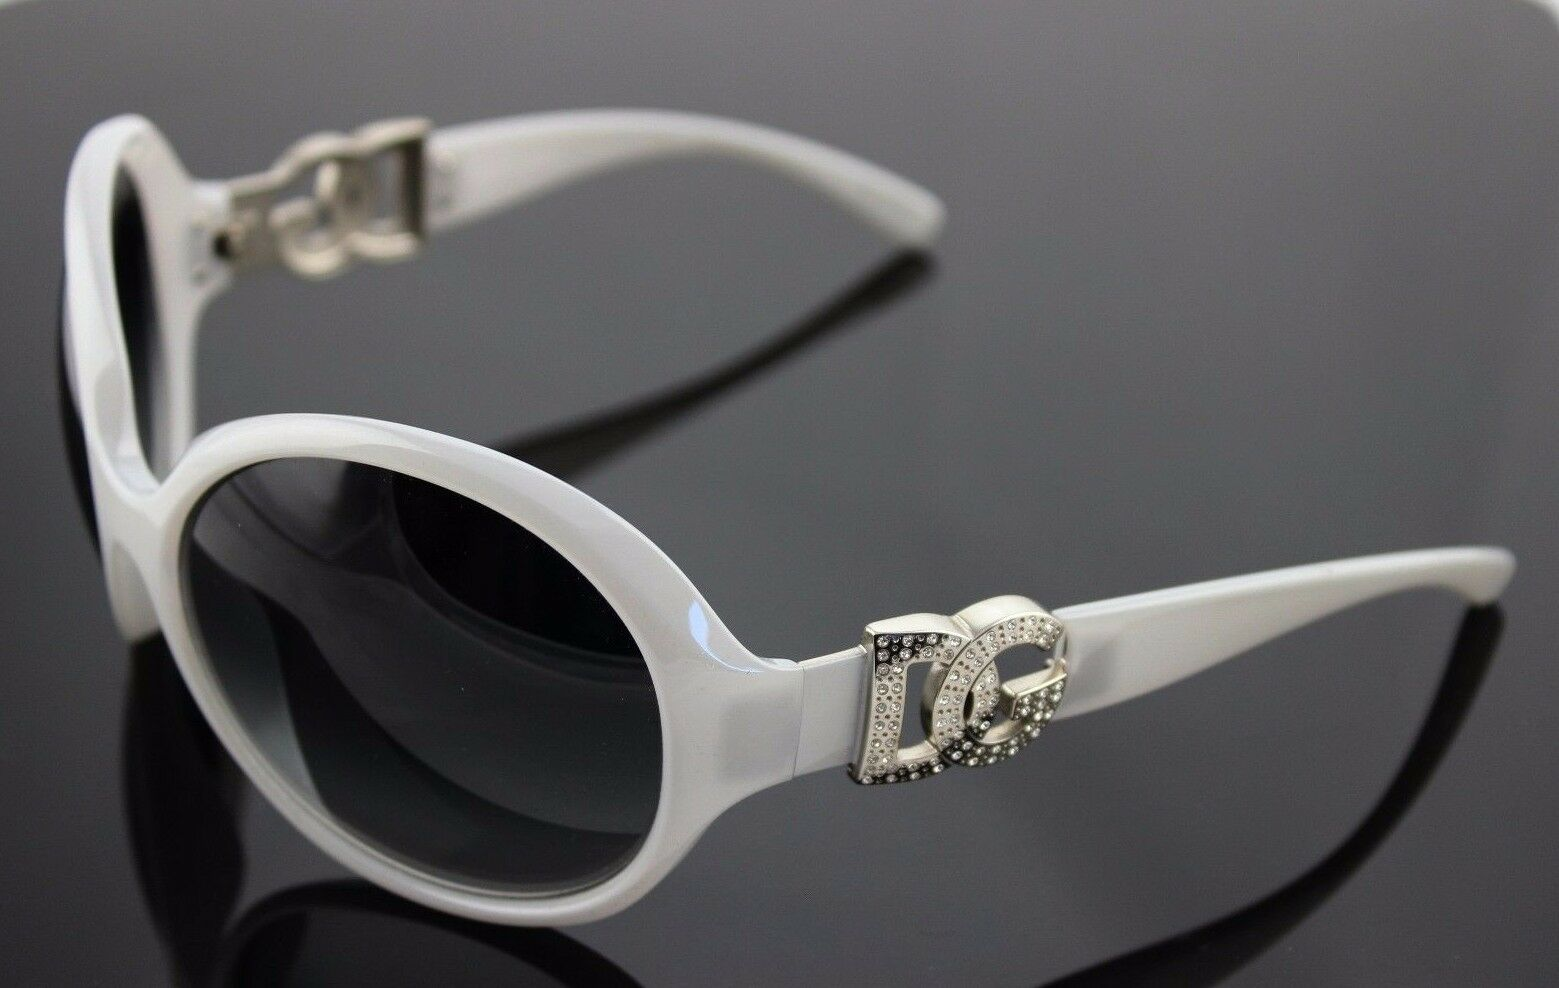 4a1ba24c75 RARE Genuine D G Dolce   Gabbana Pearl Grey Crystal Sunglasses DG 6030 B  694 8G 1 of 9Only 1 available ...